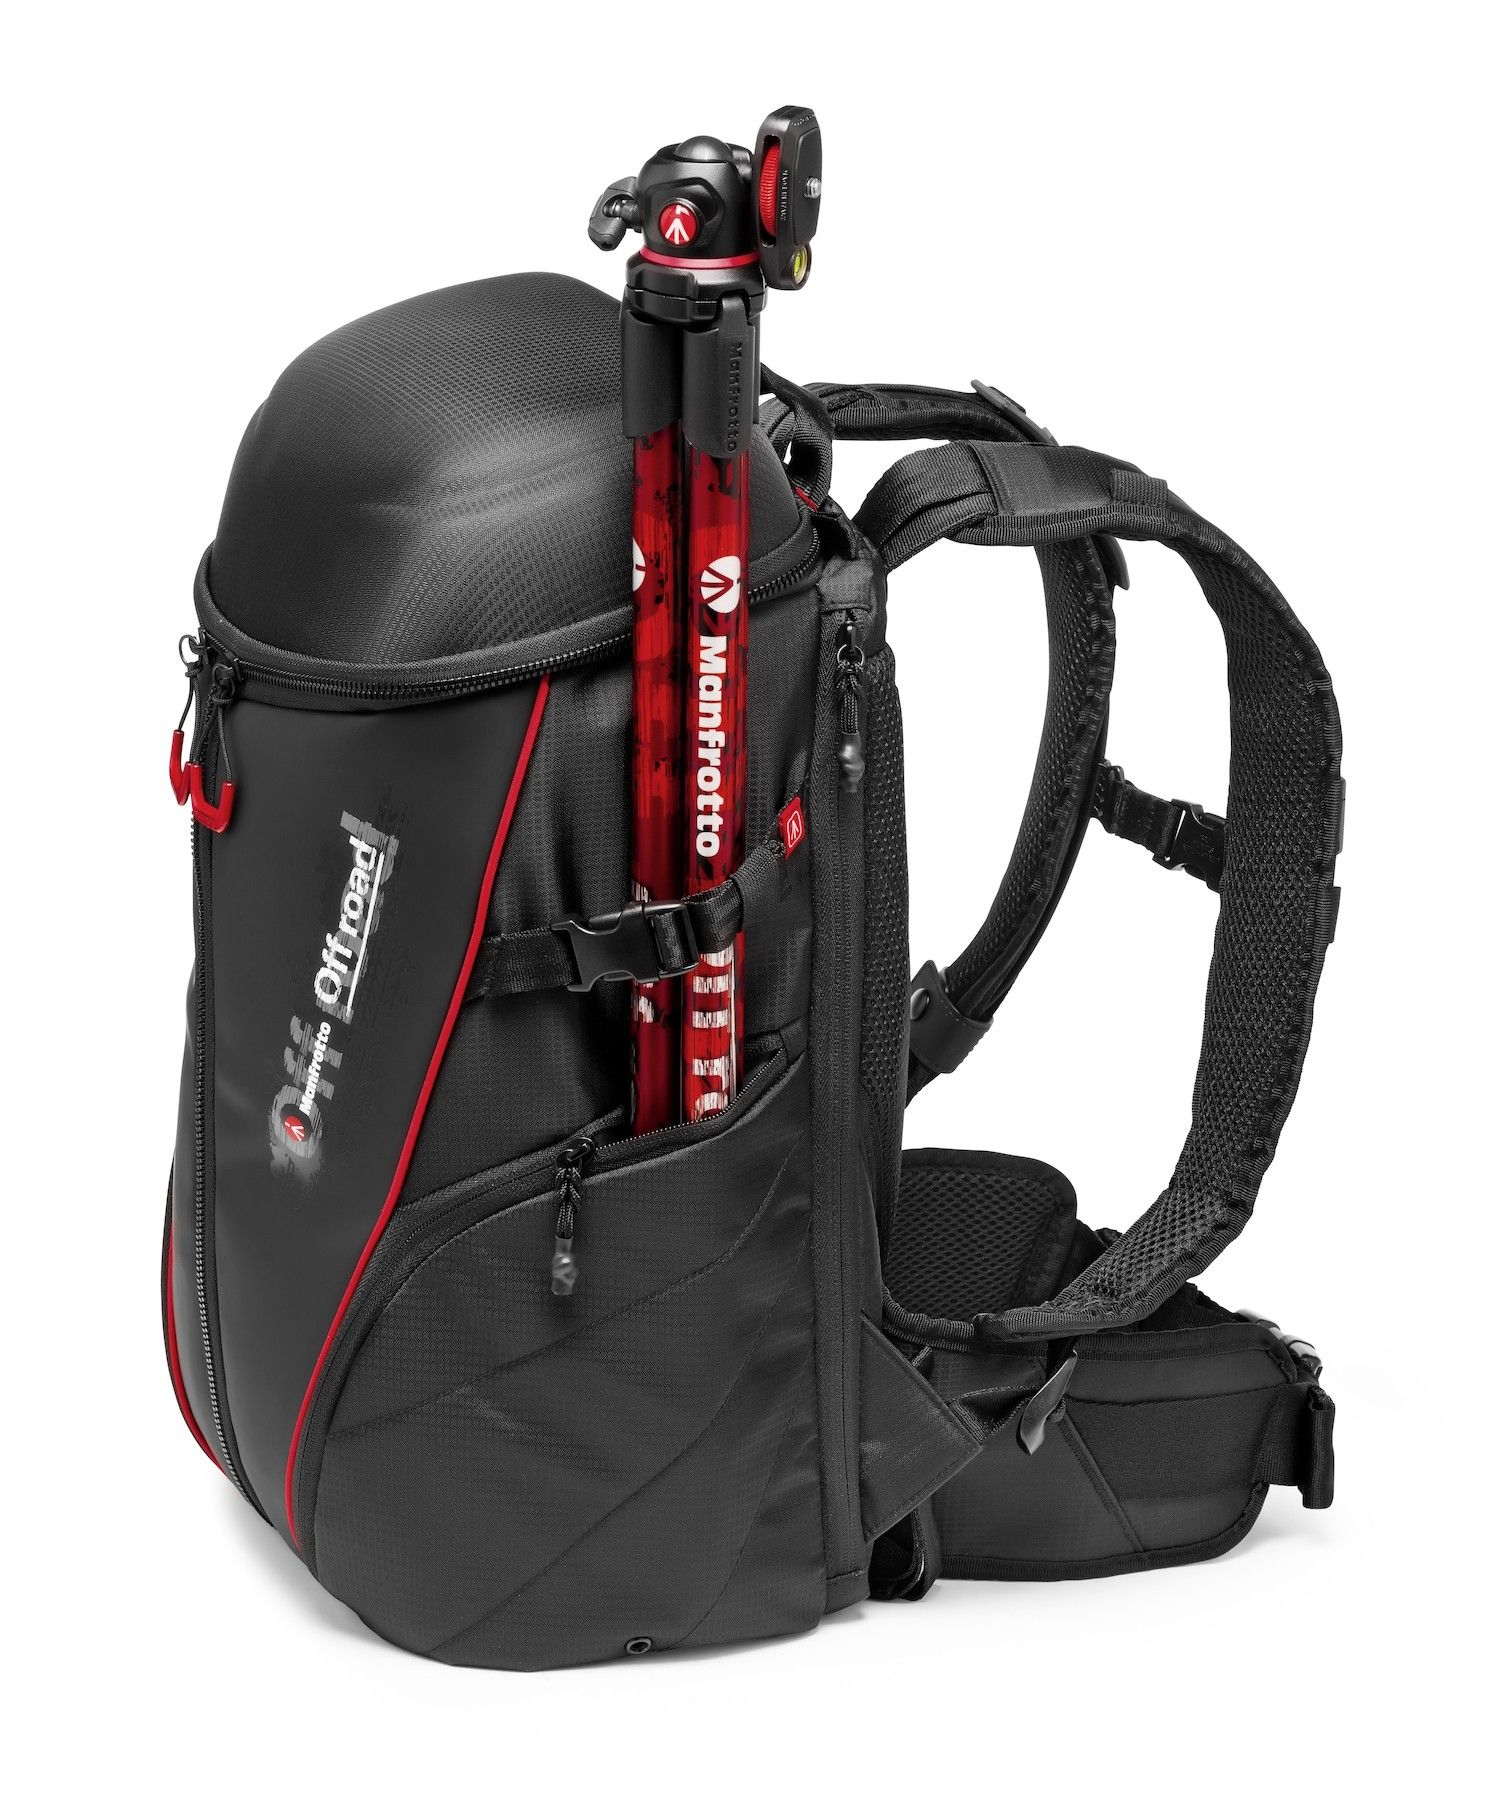 a42feb8292ac The Manfrotto Off road Stunt action camera backpack is the perfect  companion for your extreme activities. Thanks to the removable internal  protective ...